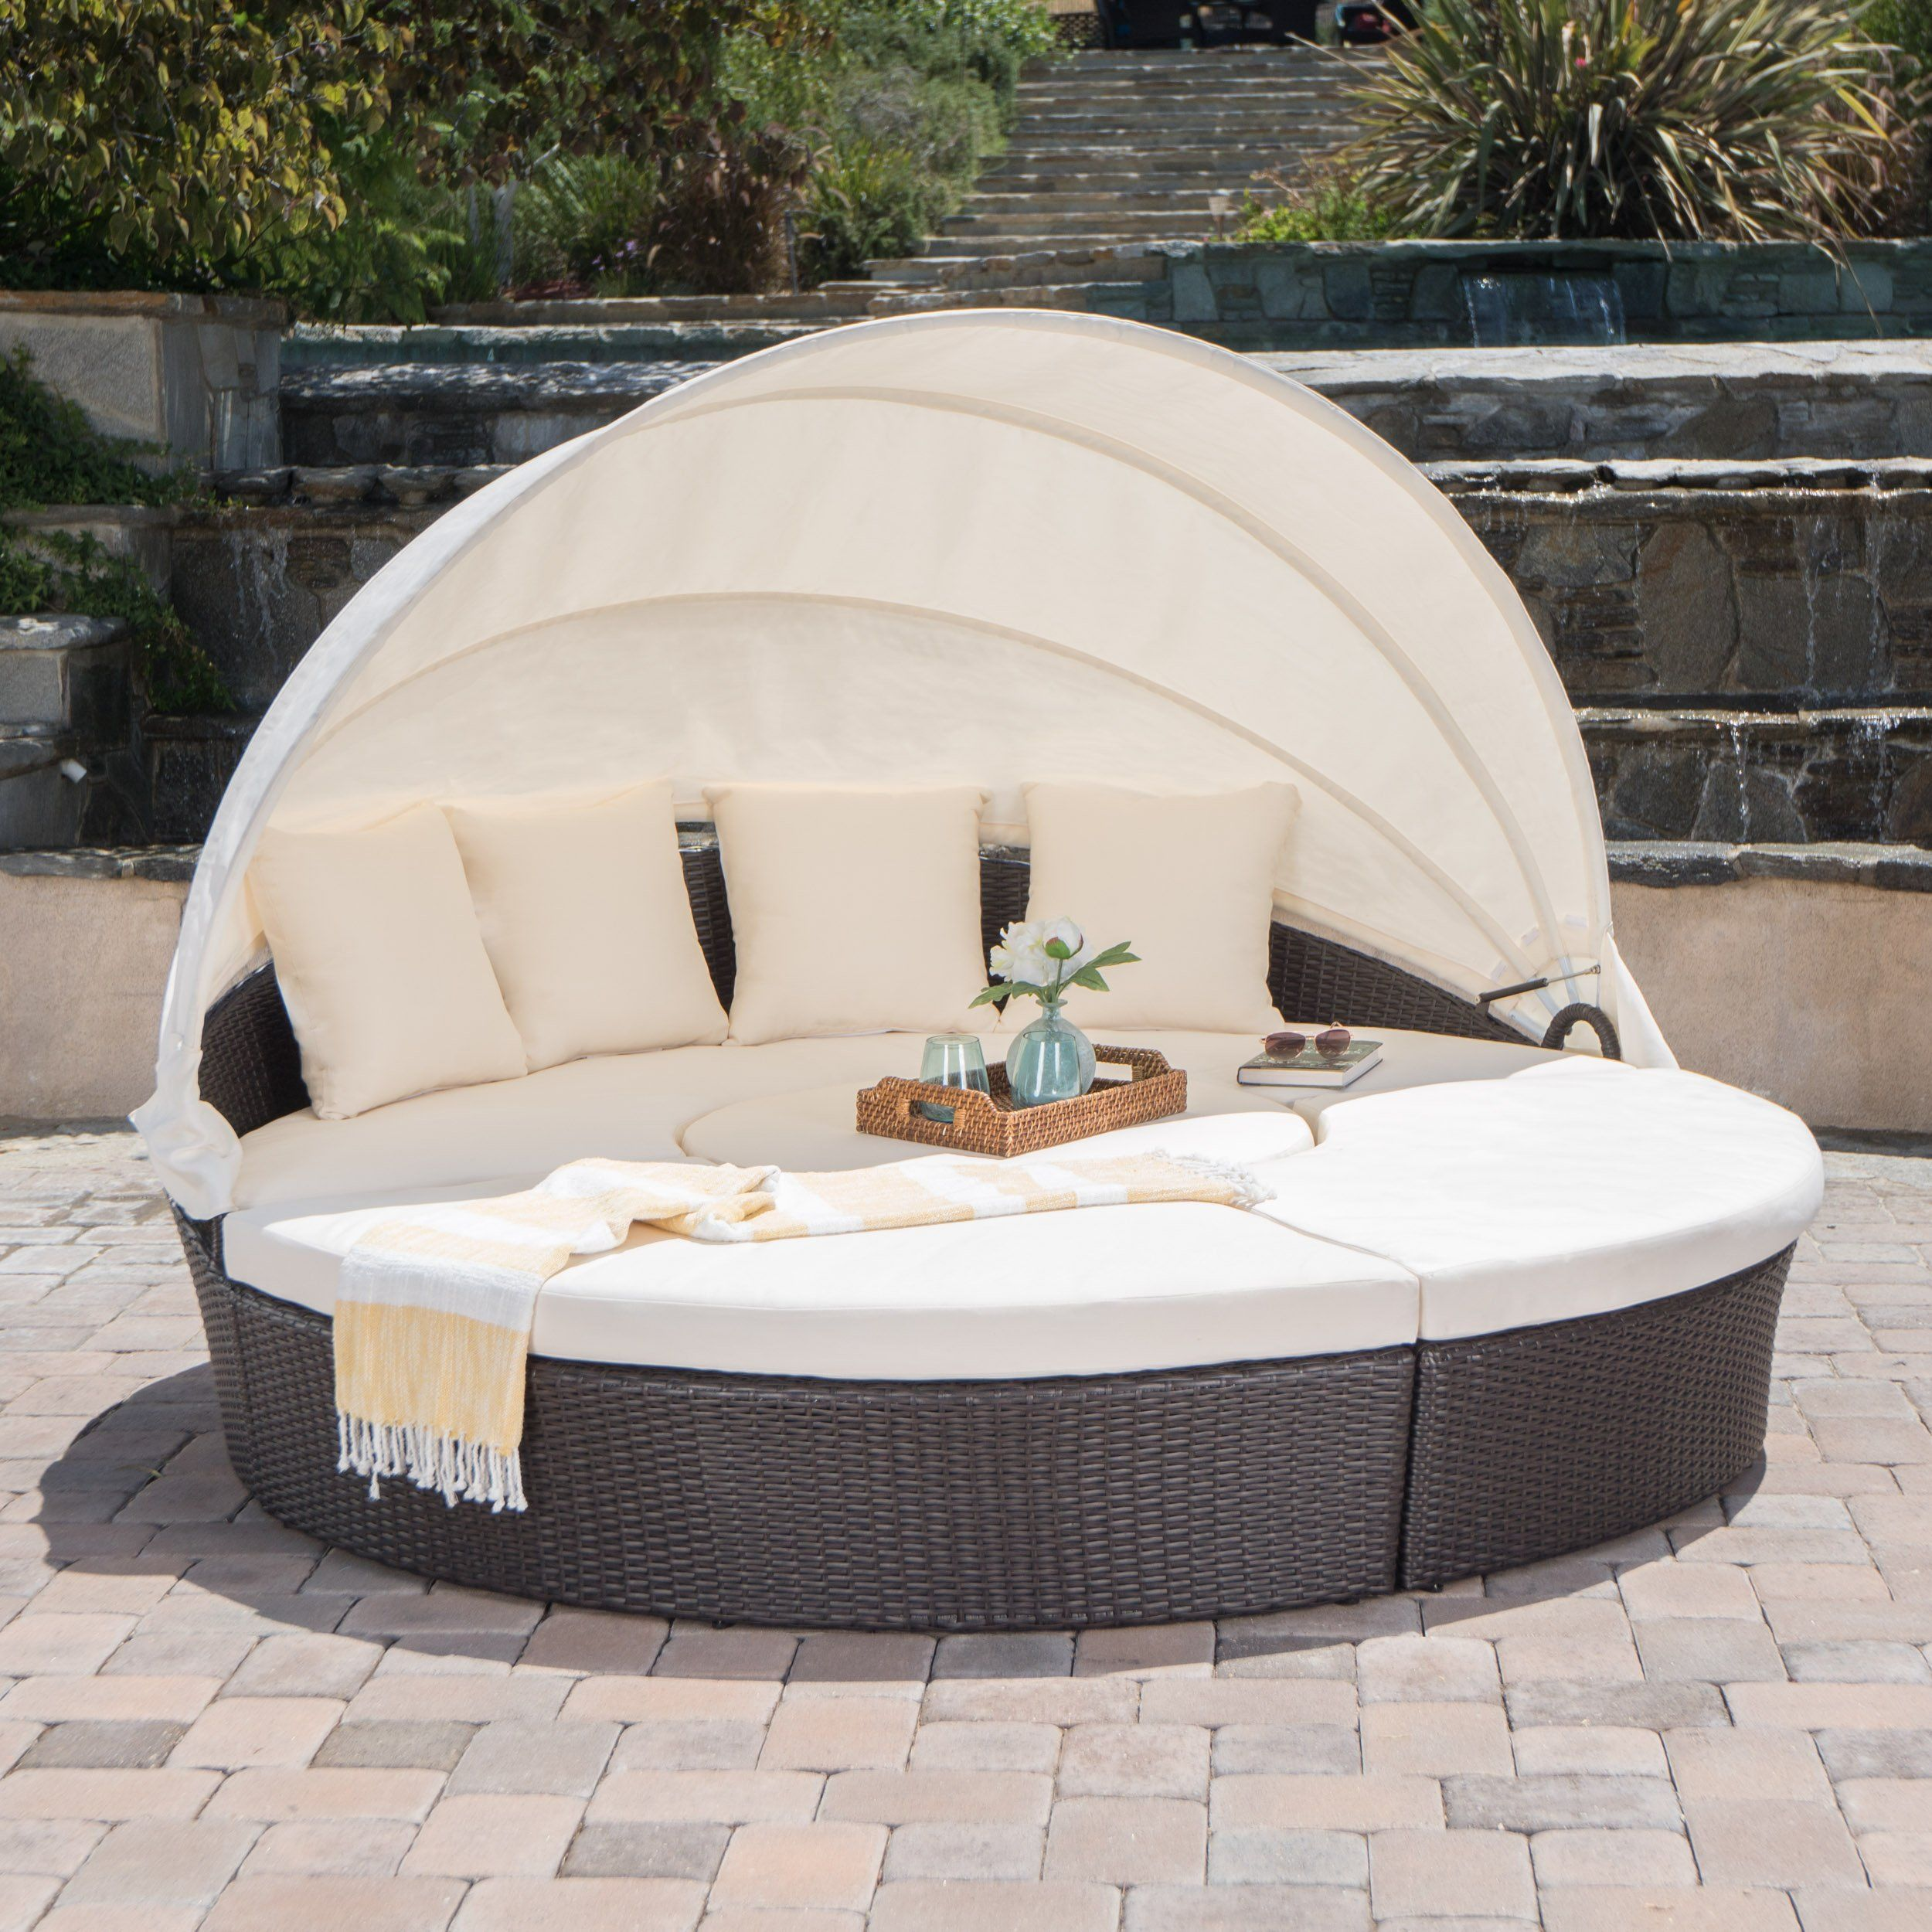 Bellagio outdoor brown wicker daybed with an aluminum frame and an ice bucket